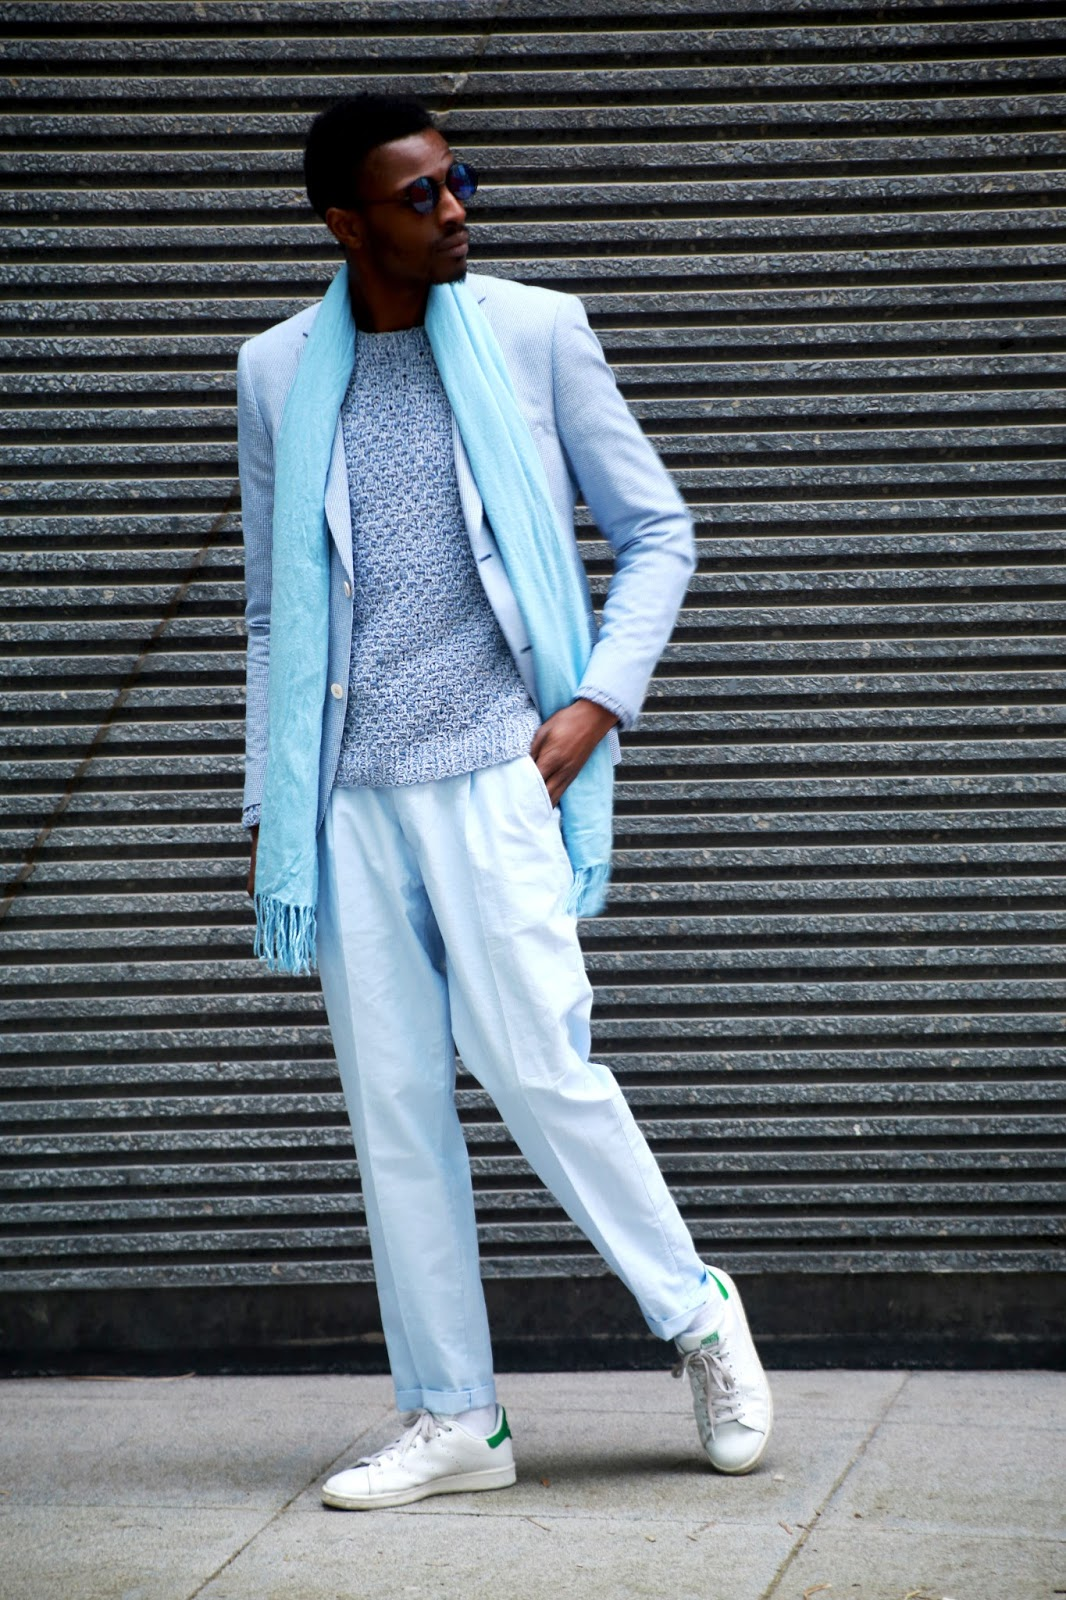 Style Challenge : Wear a baby blue city look with pyjama pants - Men's Style Blog by jon the gold